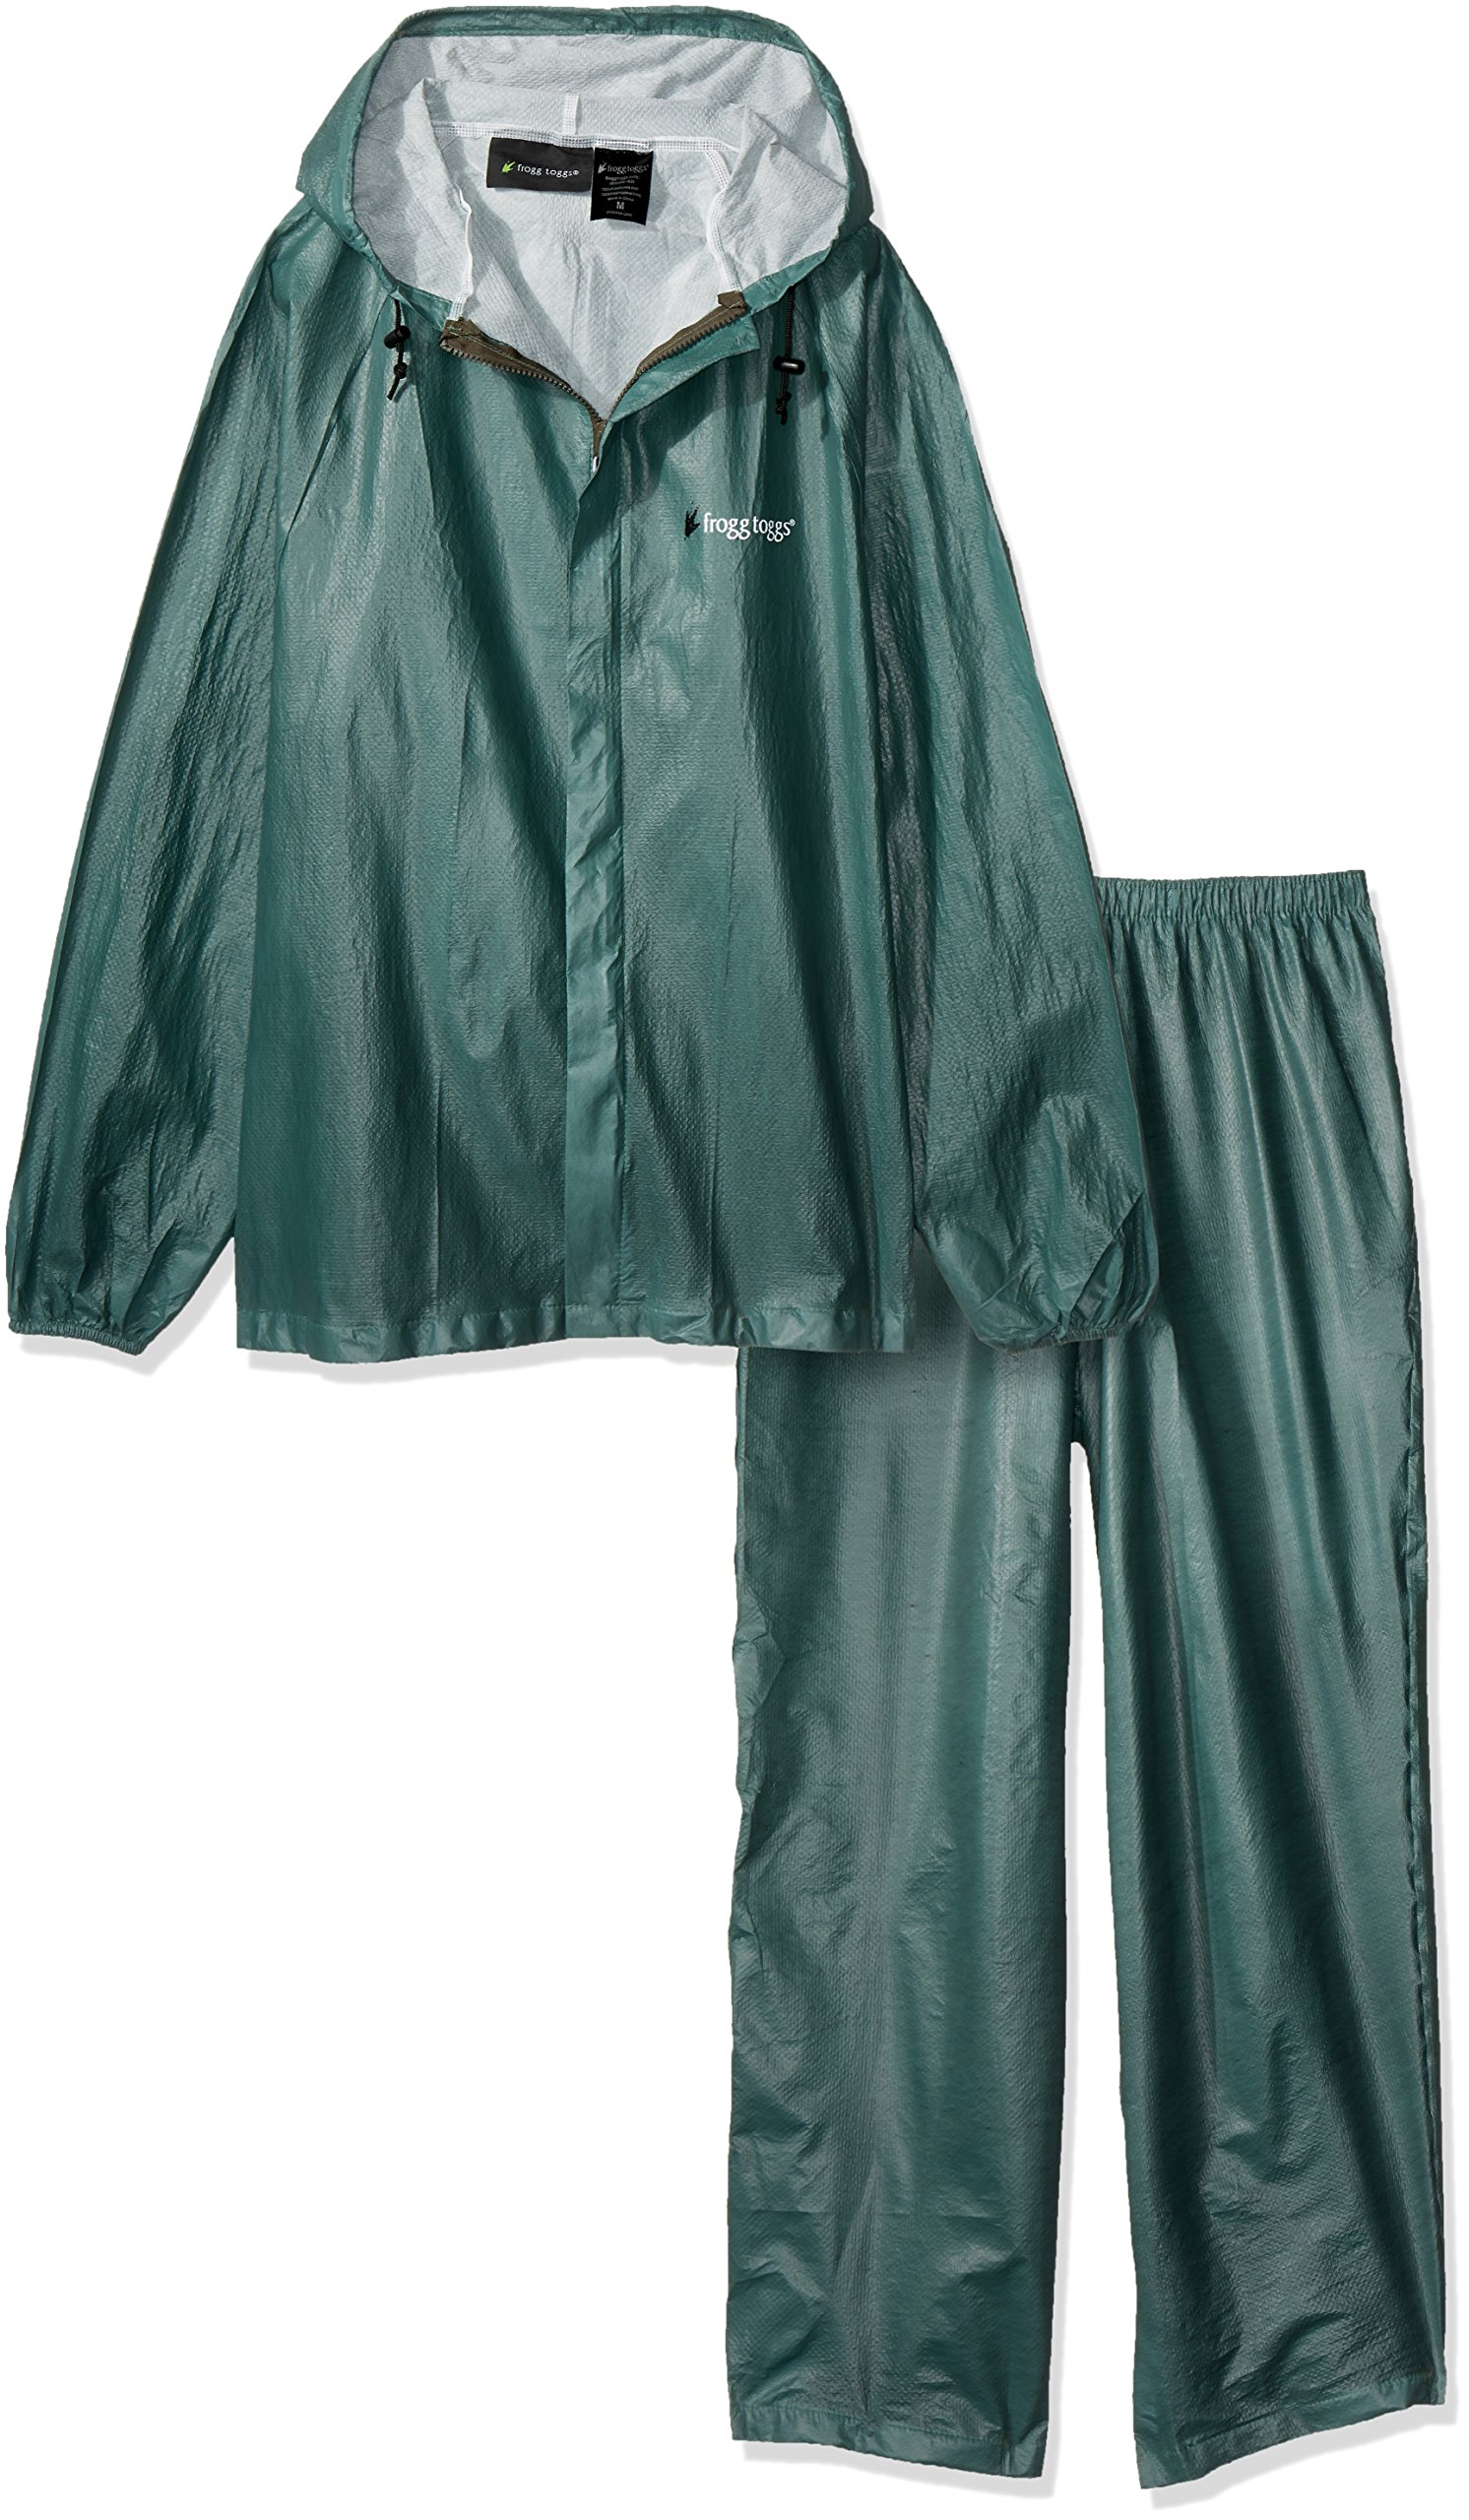 Frogg Toggs Ultra-lite2 Rain Suit W/stuff Sack - Xx-large, Royal Green